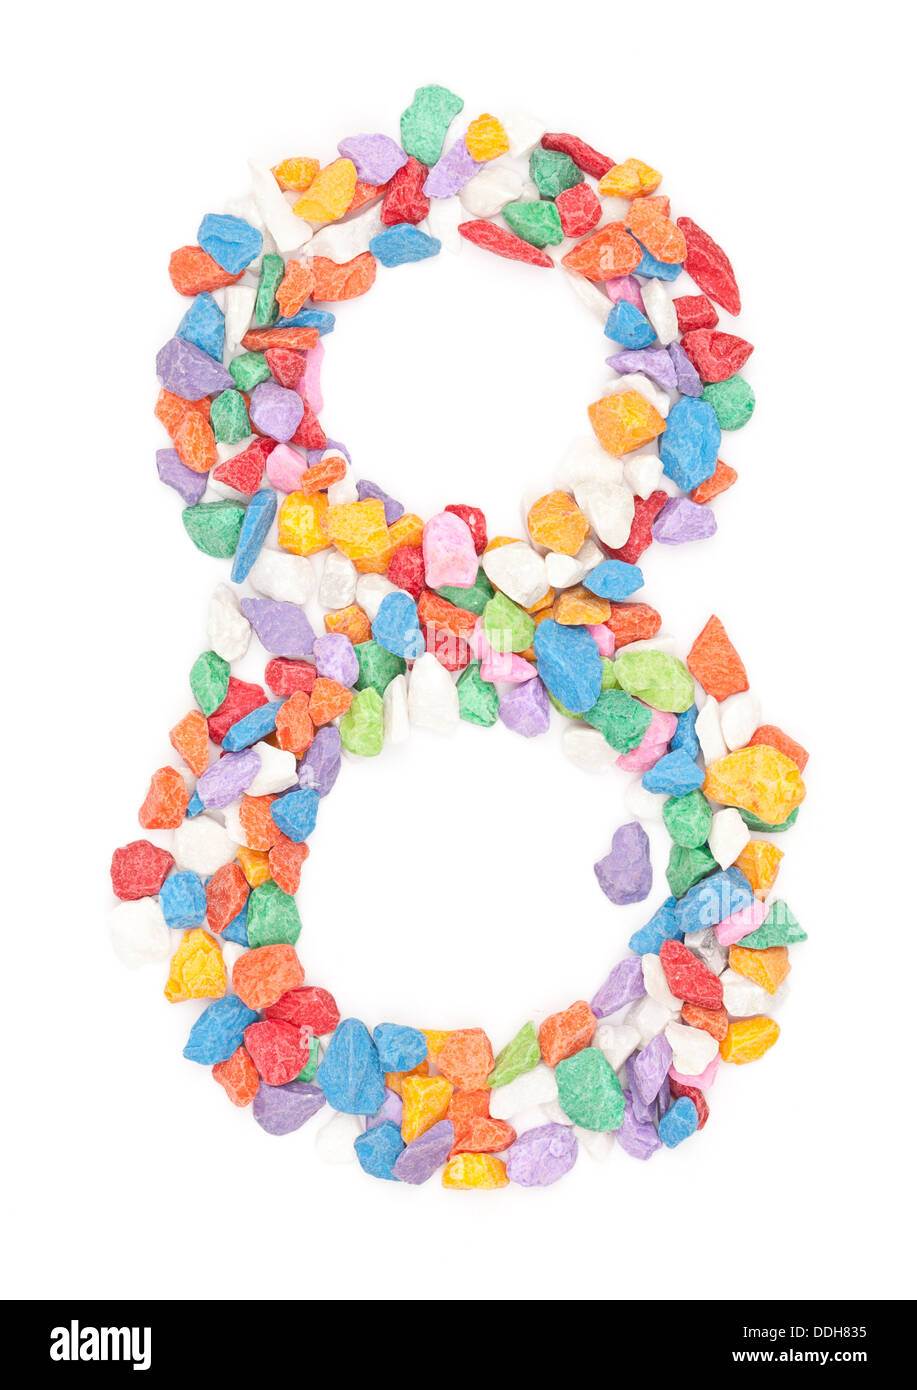 number 8 made form colour ful stone. - Stock Image